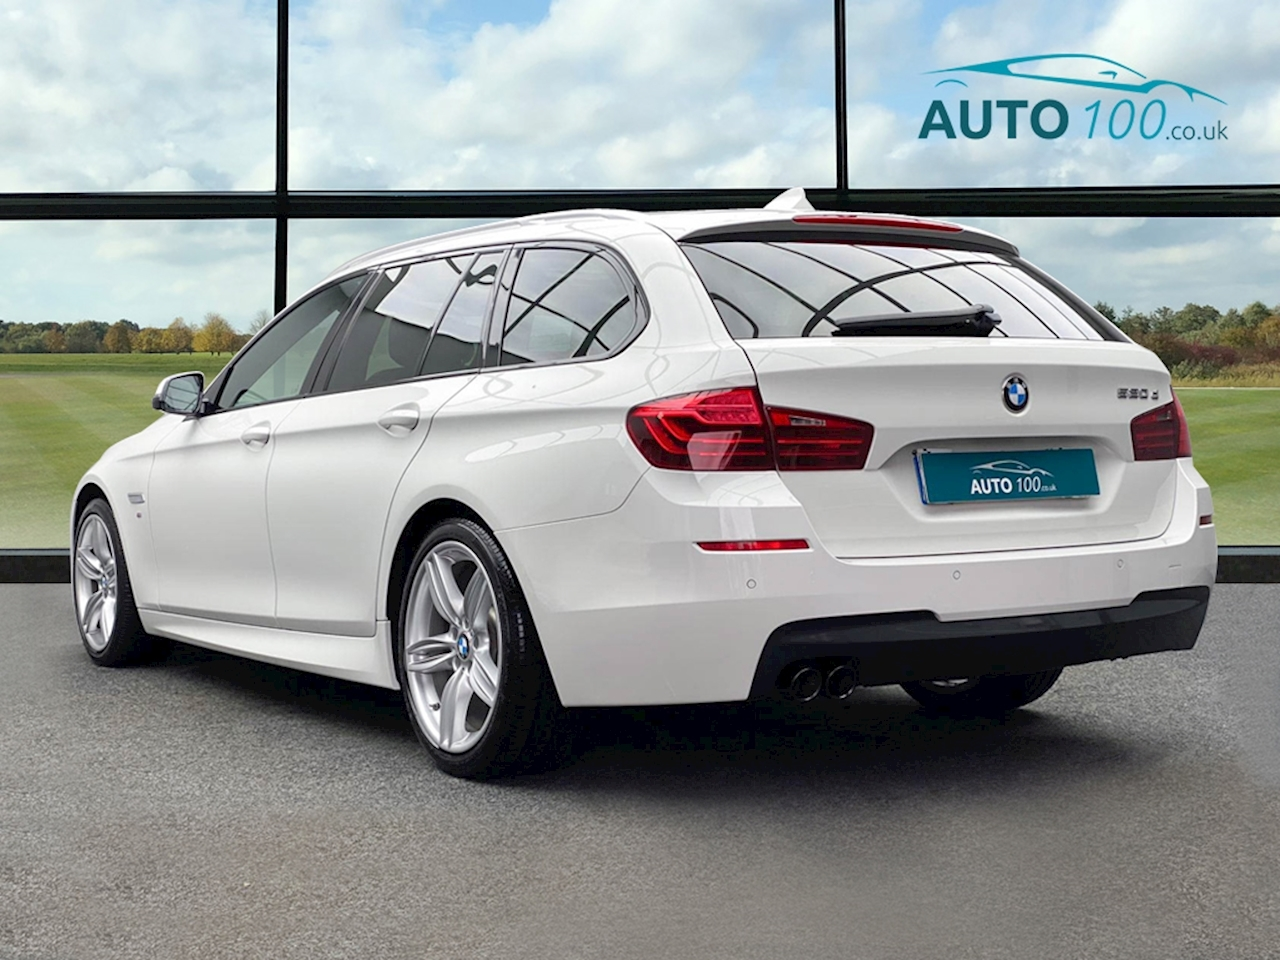 BMW 5 Series 520d M Sport Touring Touring 2.0 Automatic Diesel